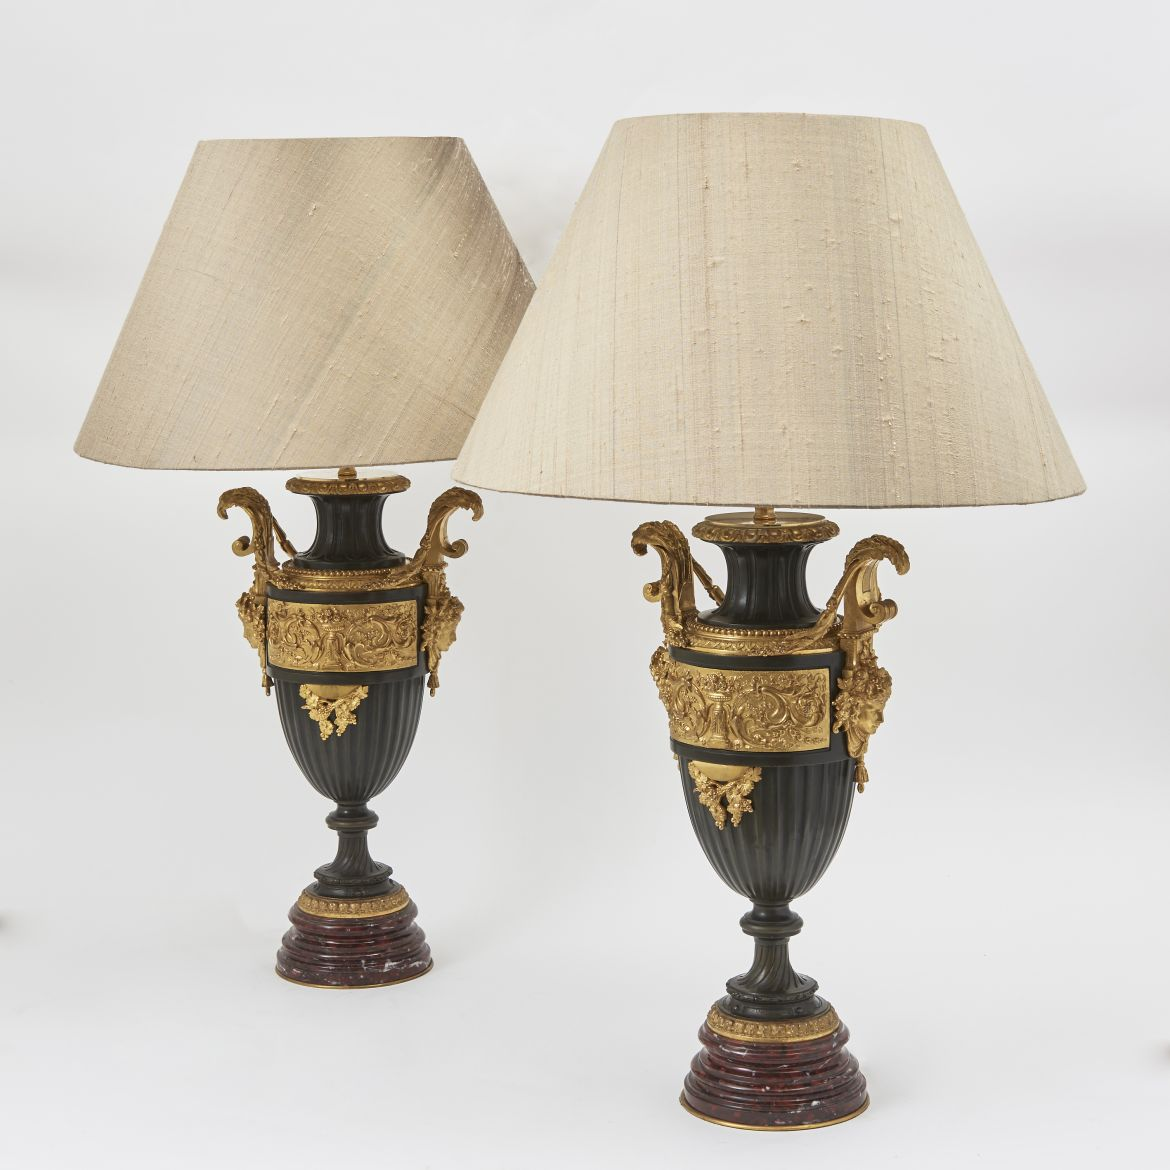 French Neoclassical Urns as lamps